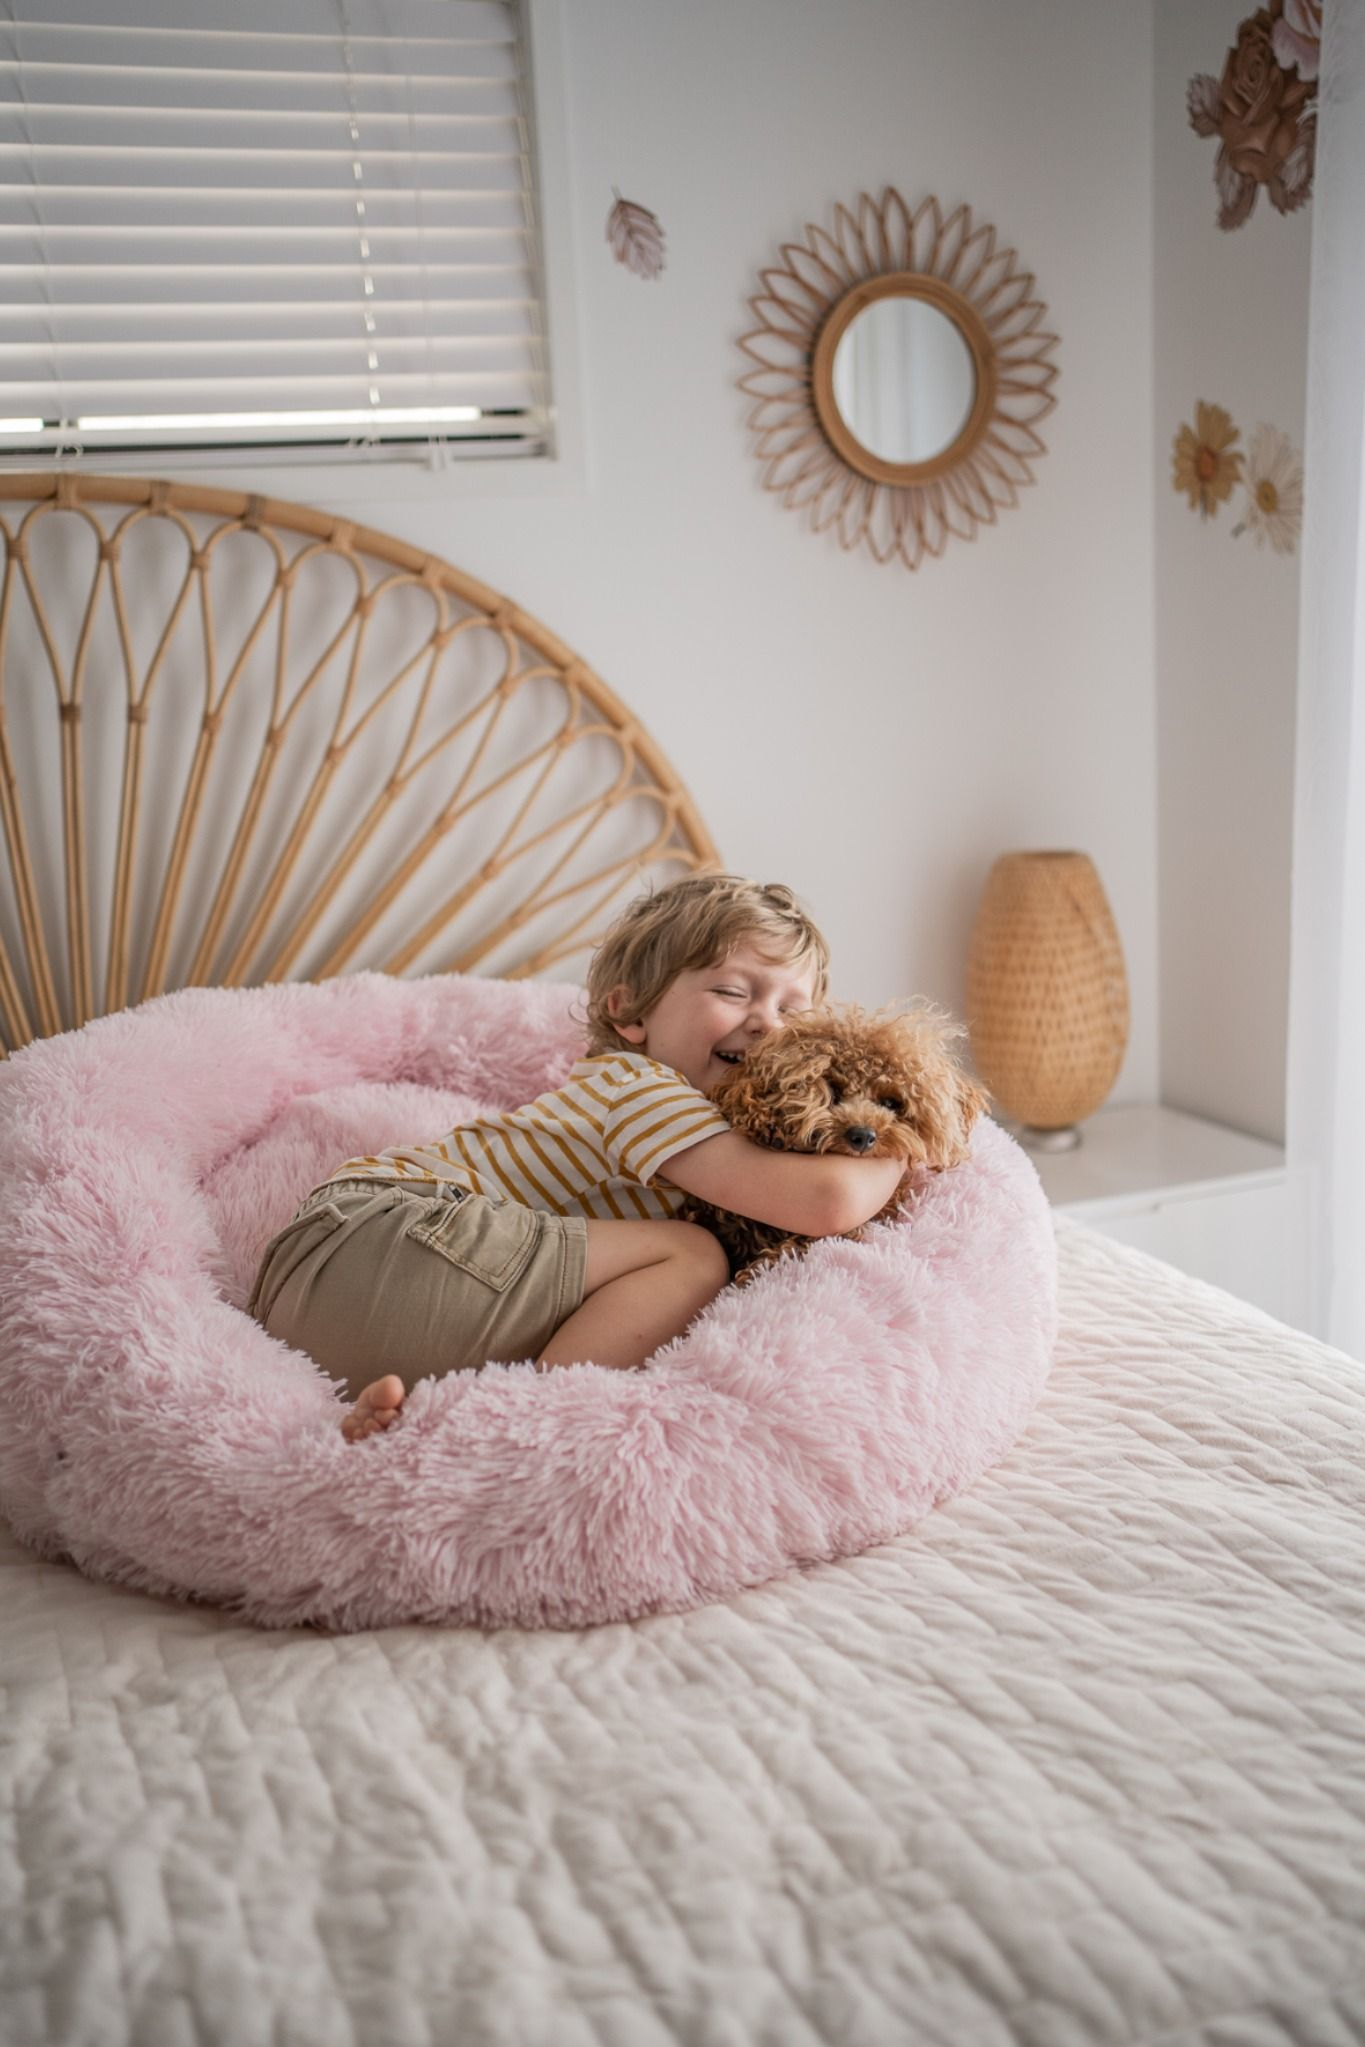 Calming Pet Beds in 2020 Pet calming, Toddler girl room